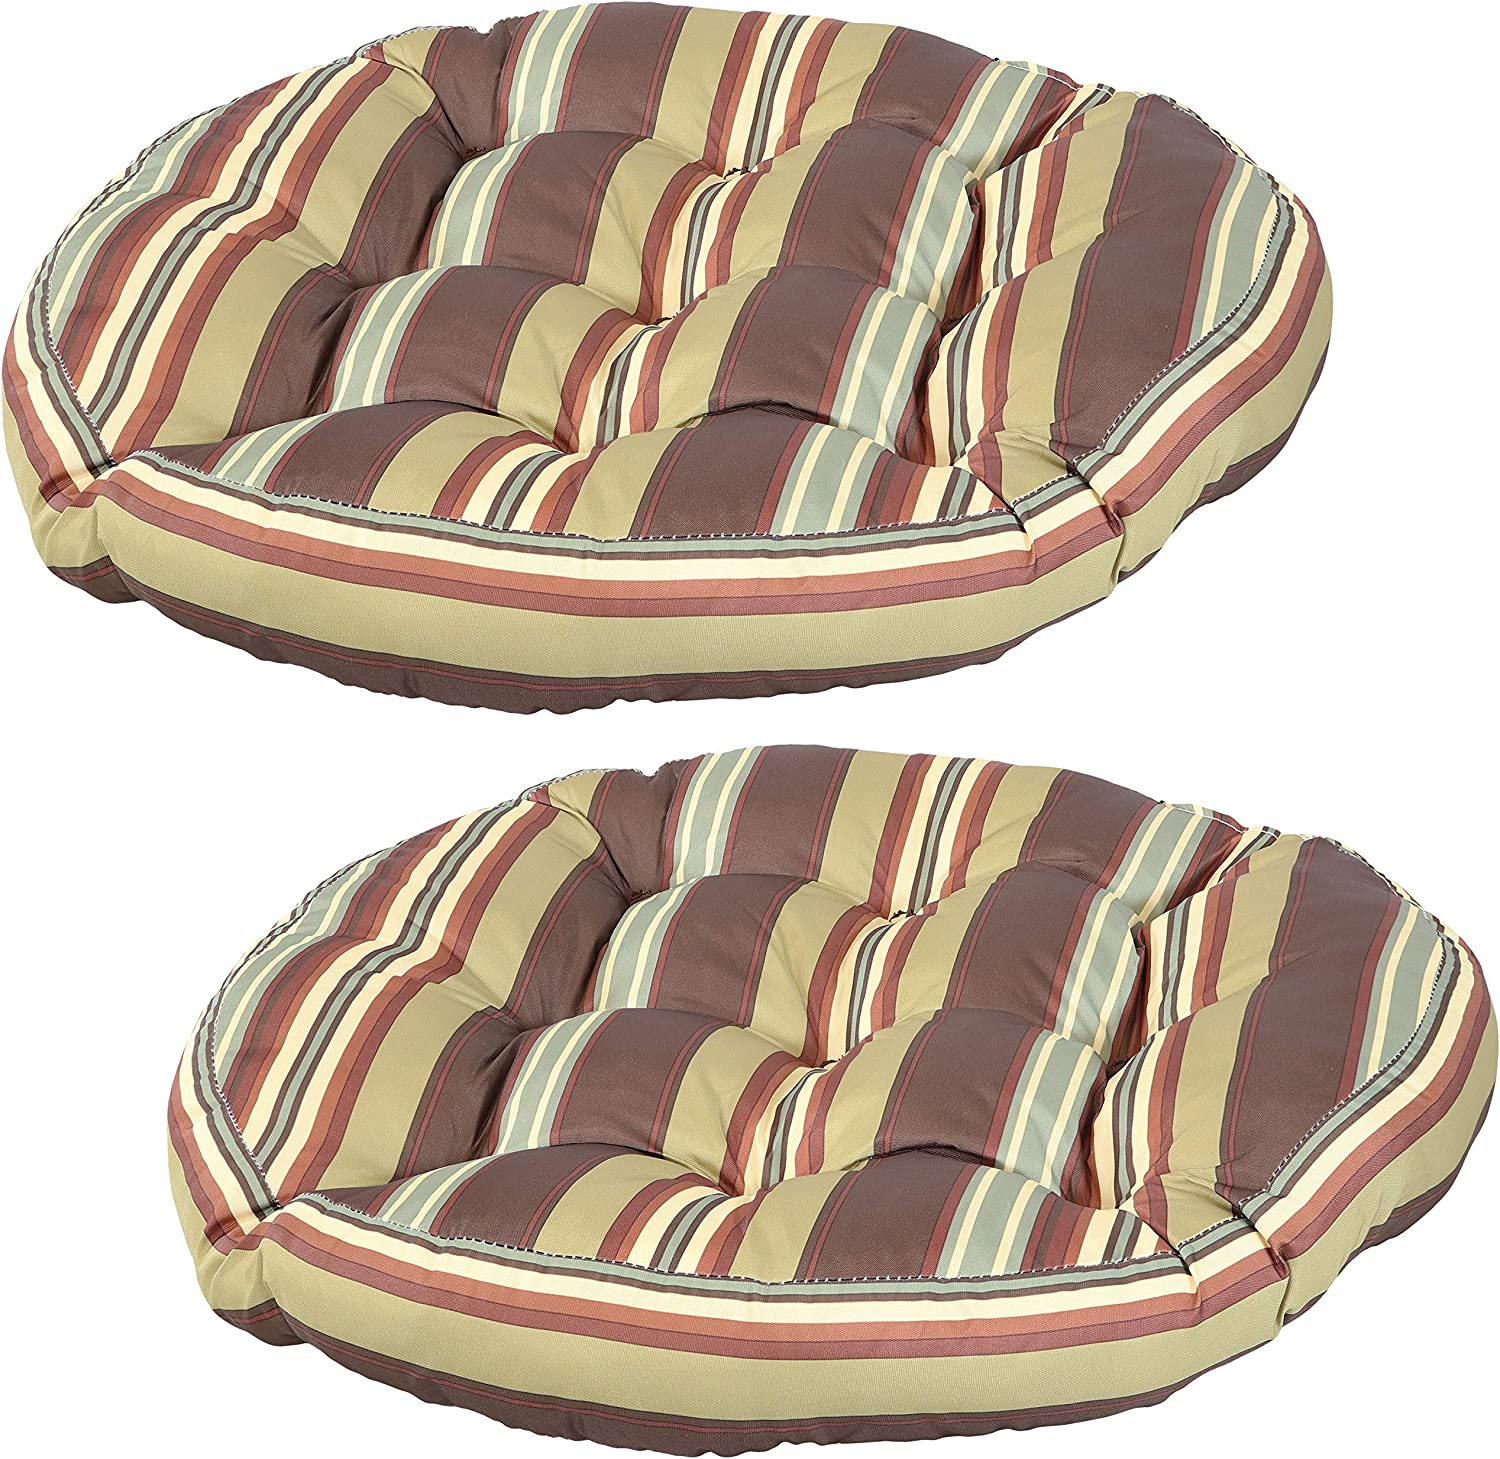 Sunnydaze Tufted Large Round Floor Cushion - Set of 2 - Unique Outdoor/Indoor Chair Cushions or Meditation Cushions - 300D Olefin with Polyester Fill - 22-Inch Diameter - Chocolate Stripes